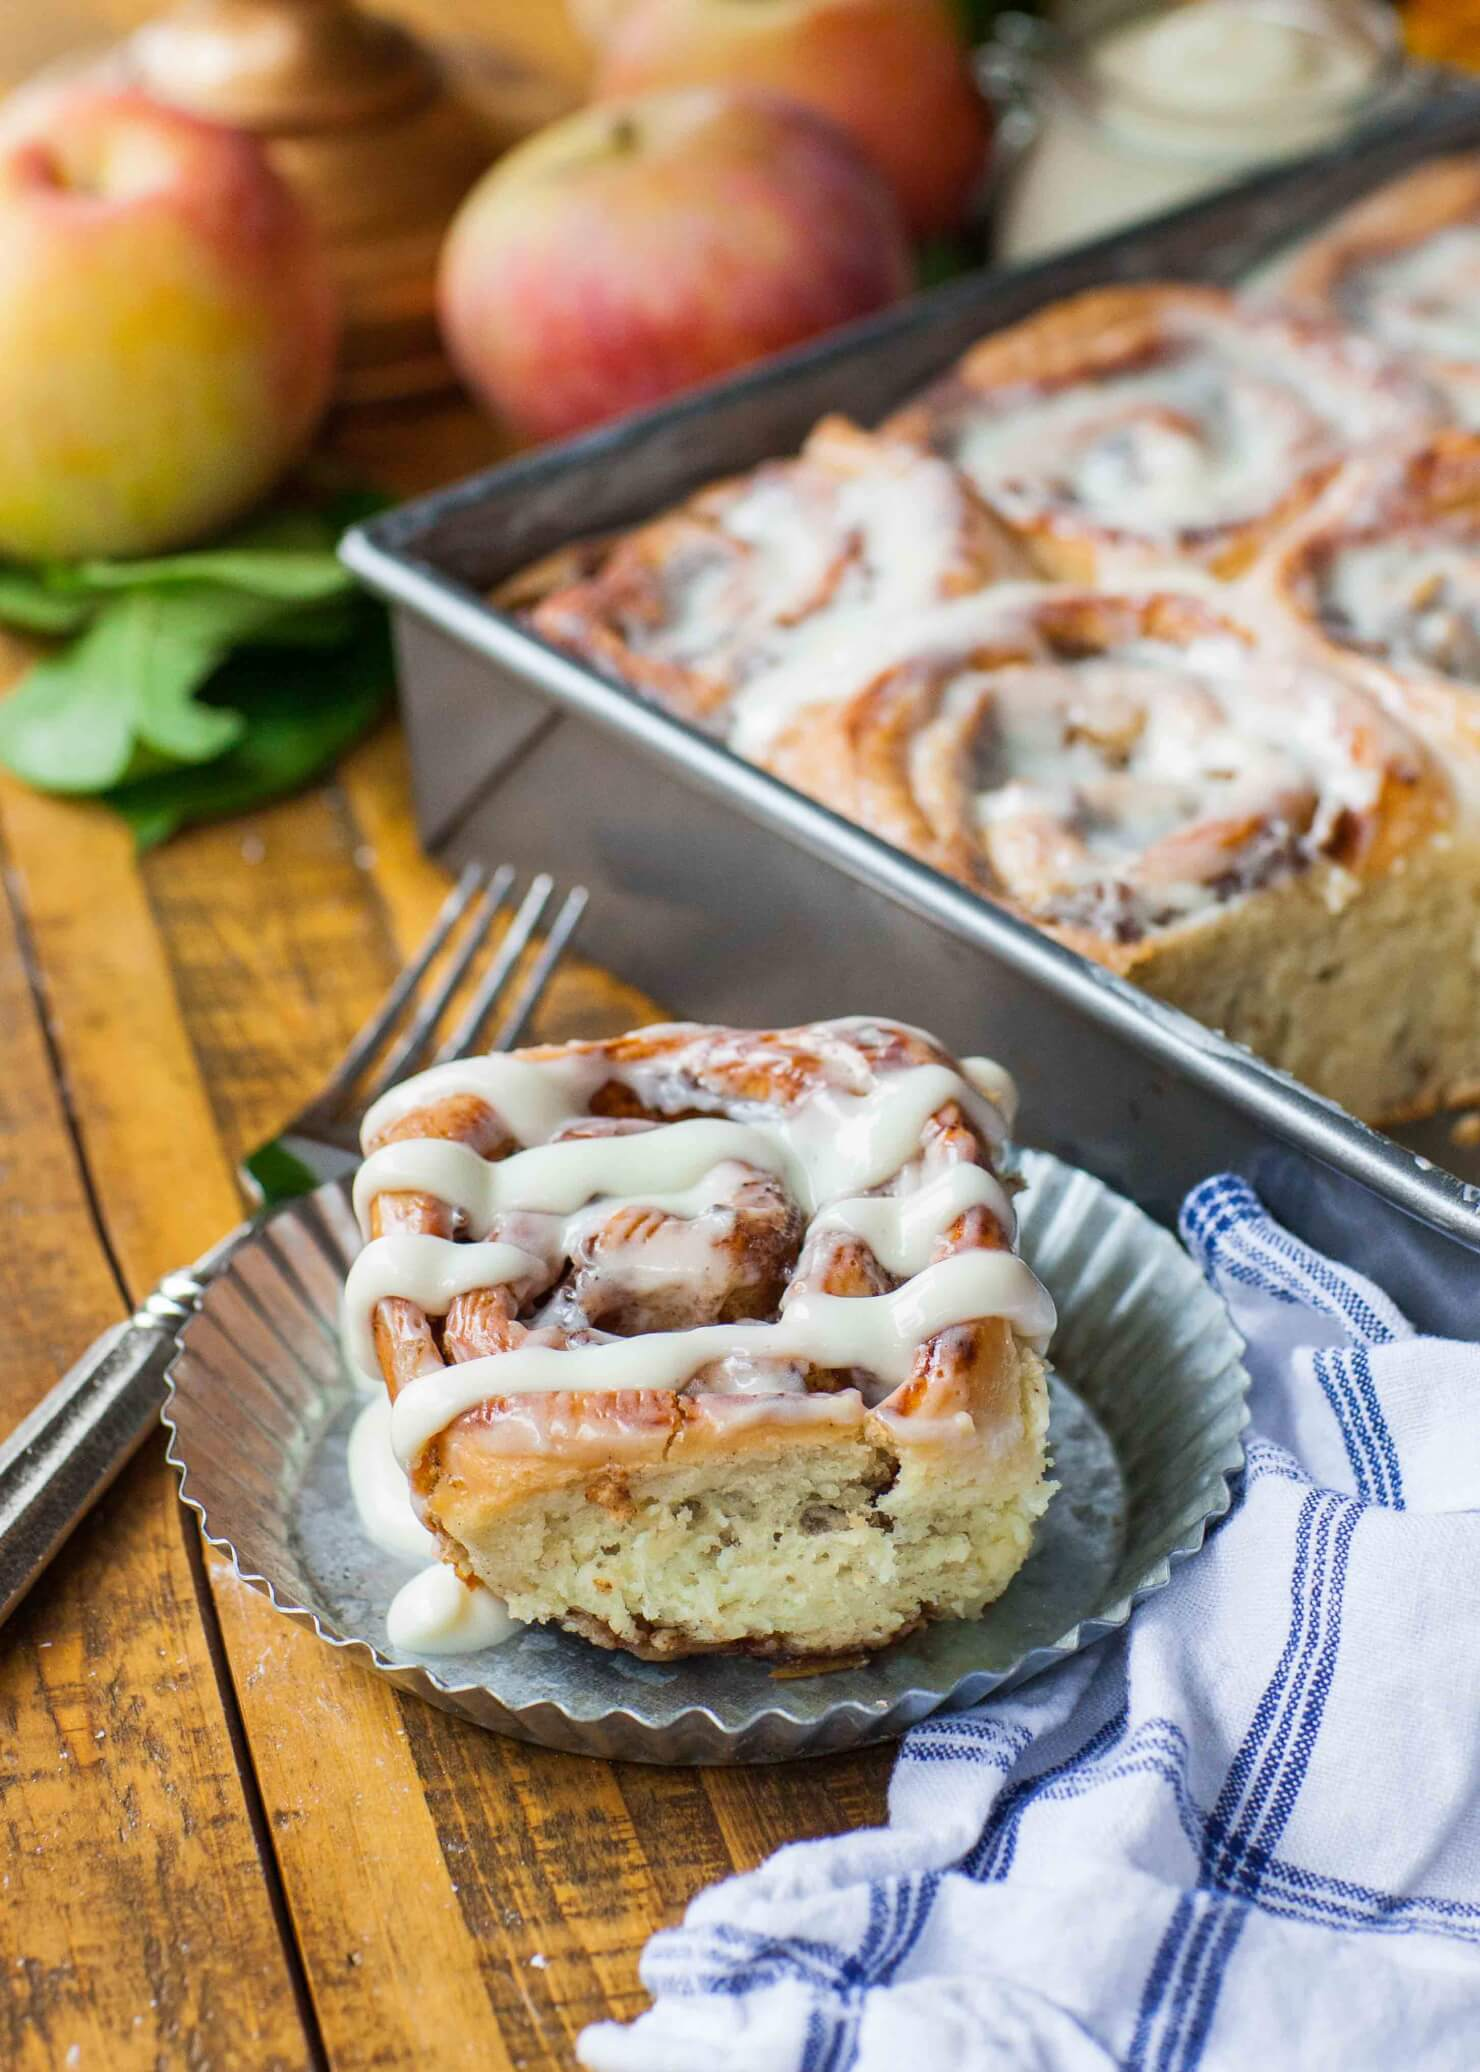 Apple Pie Rolls With Cream Cheese Frosting